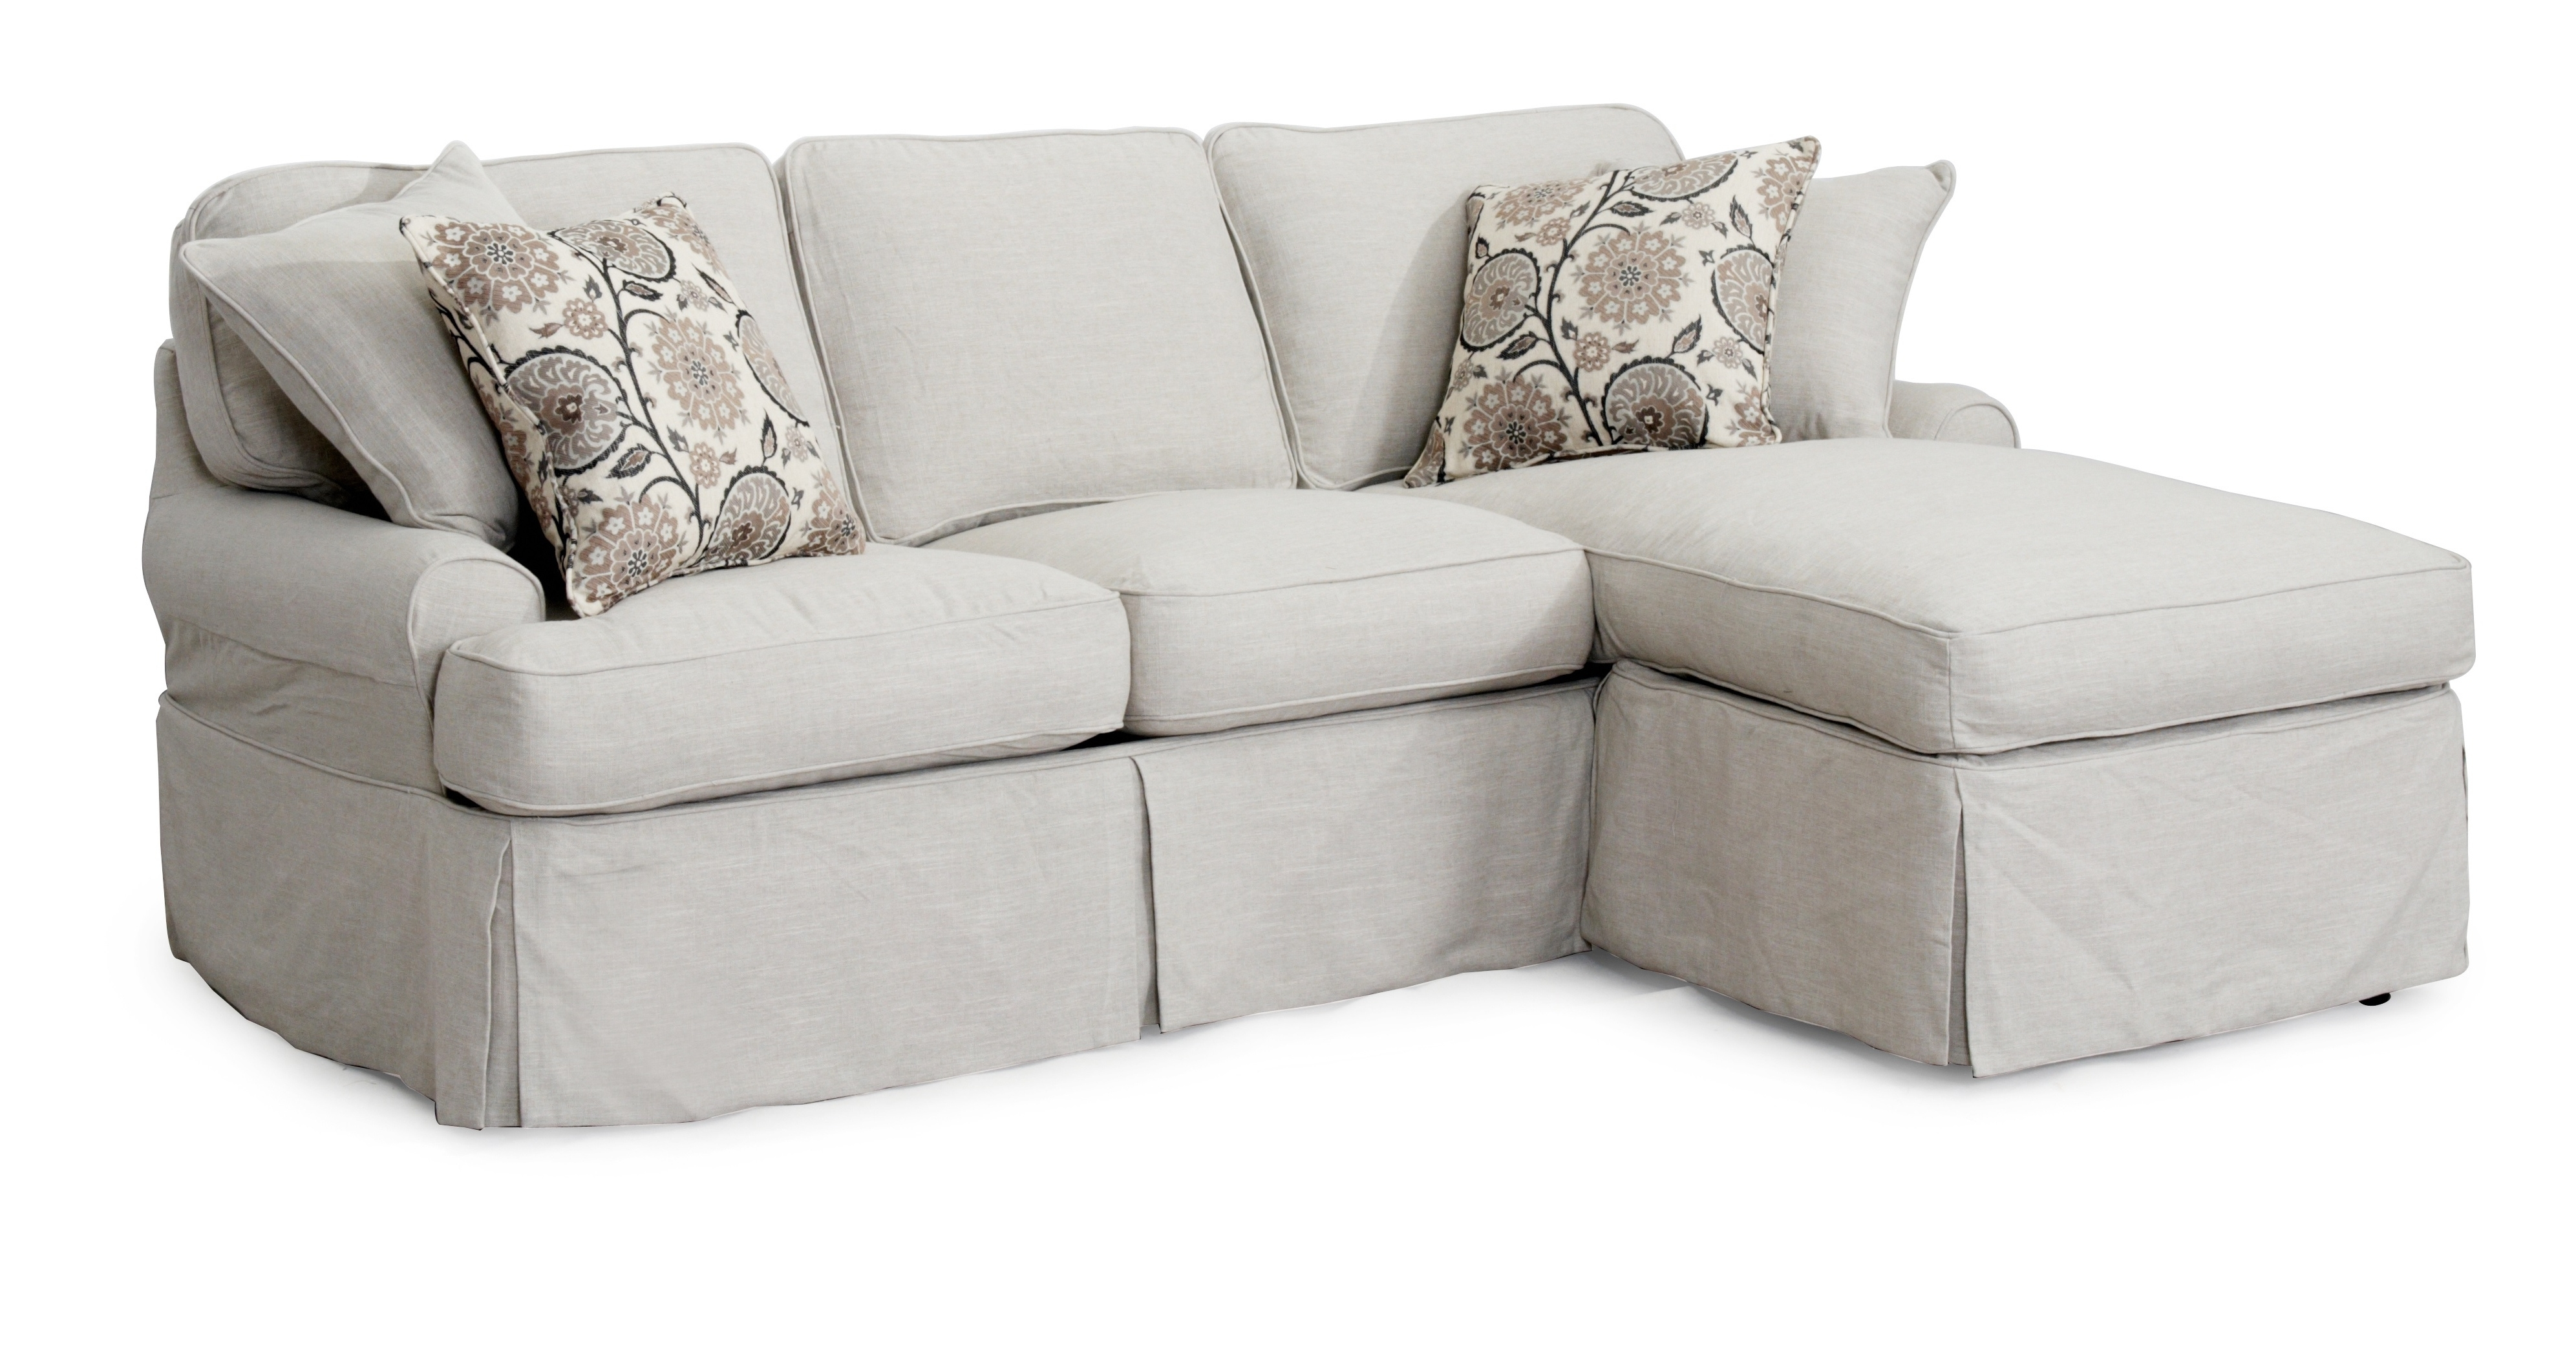 Best And Newest Decorating Interesting Walmart Slipcovers For Living Room Grey Inside Grey Sofa Chaises (View 10 of 15)